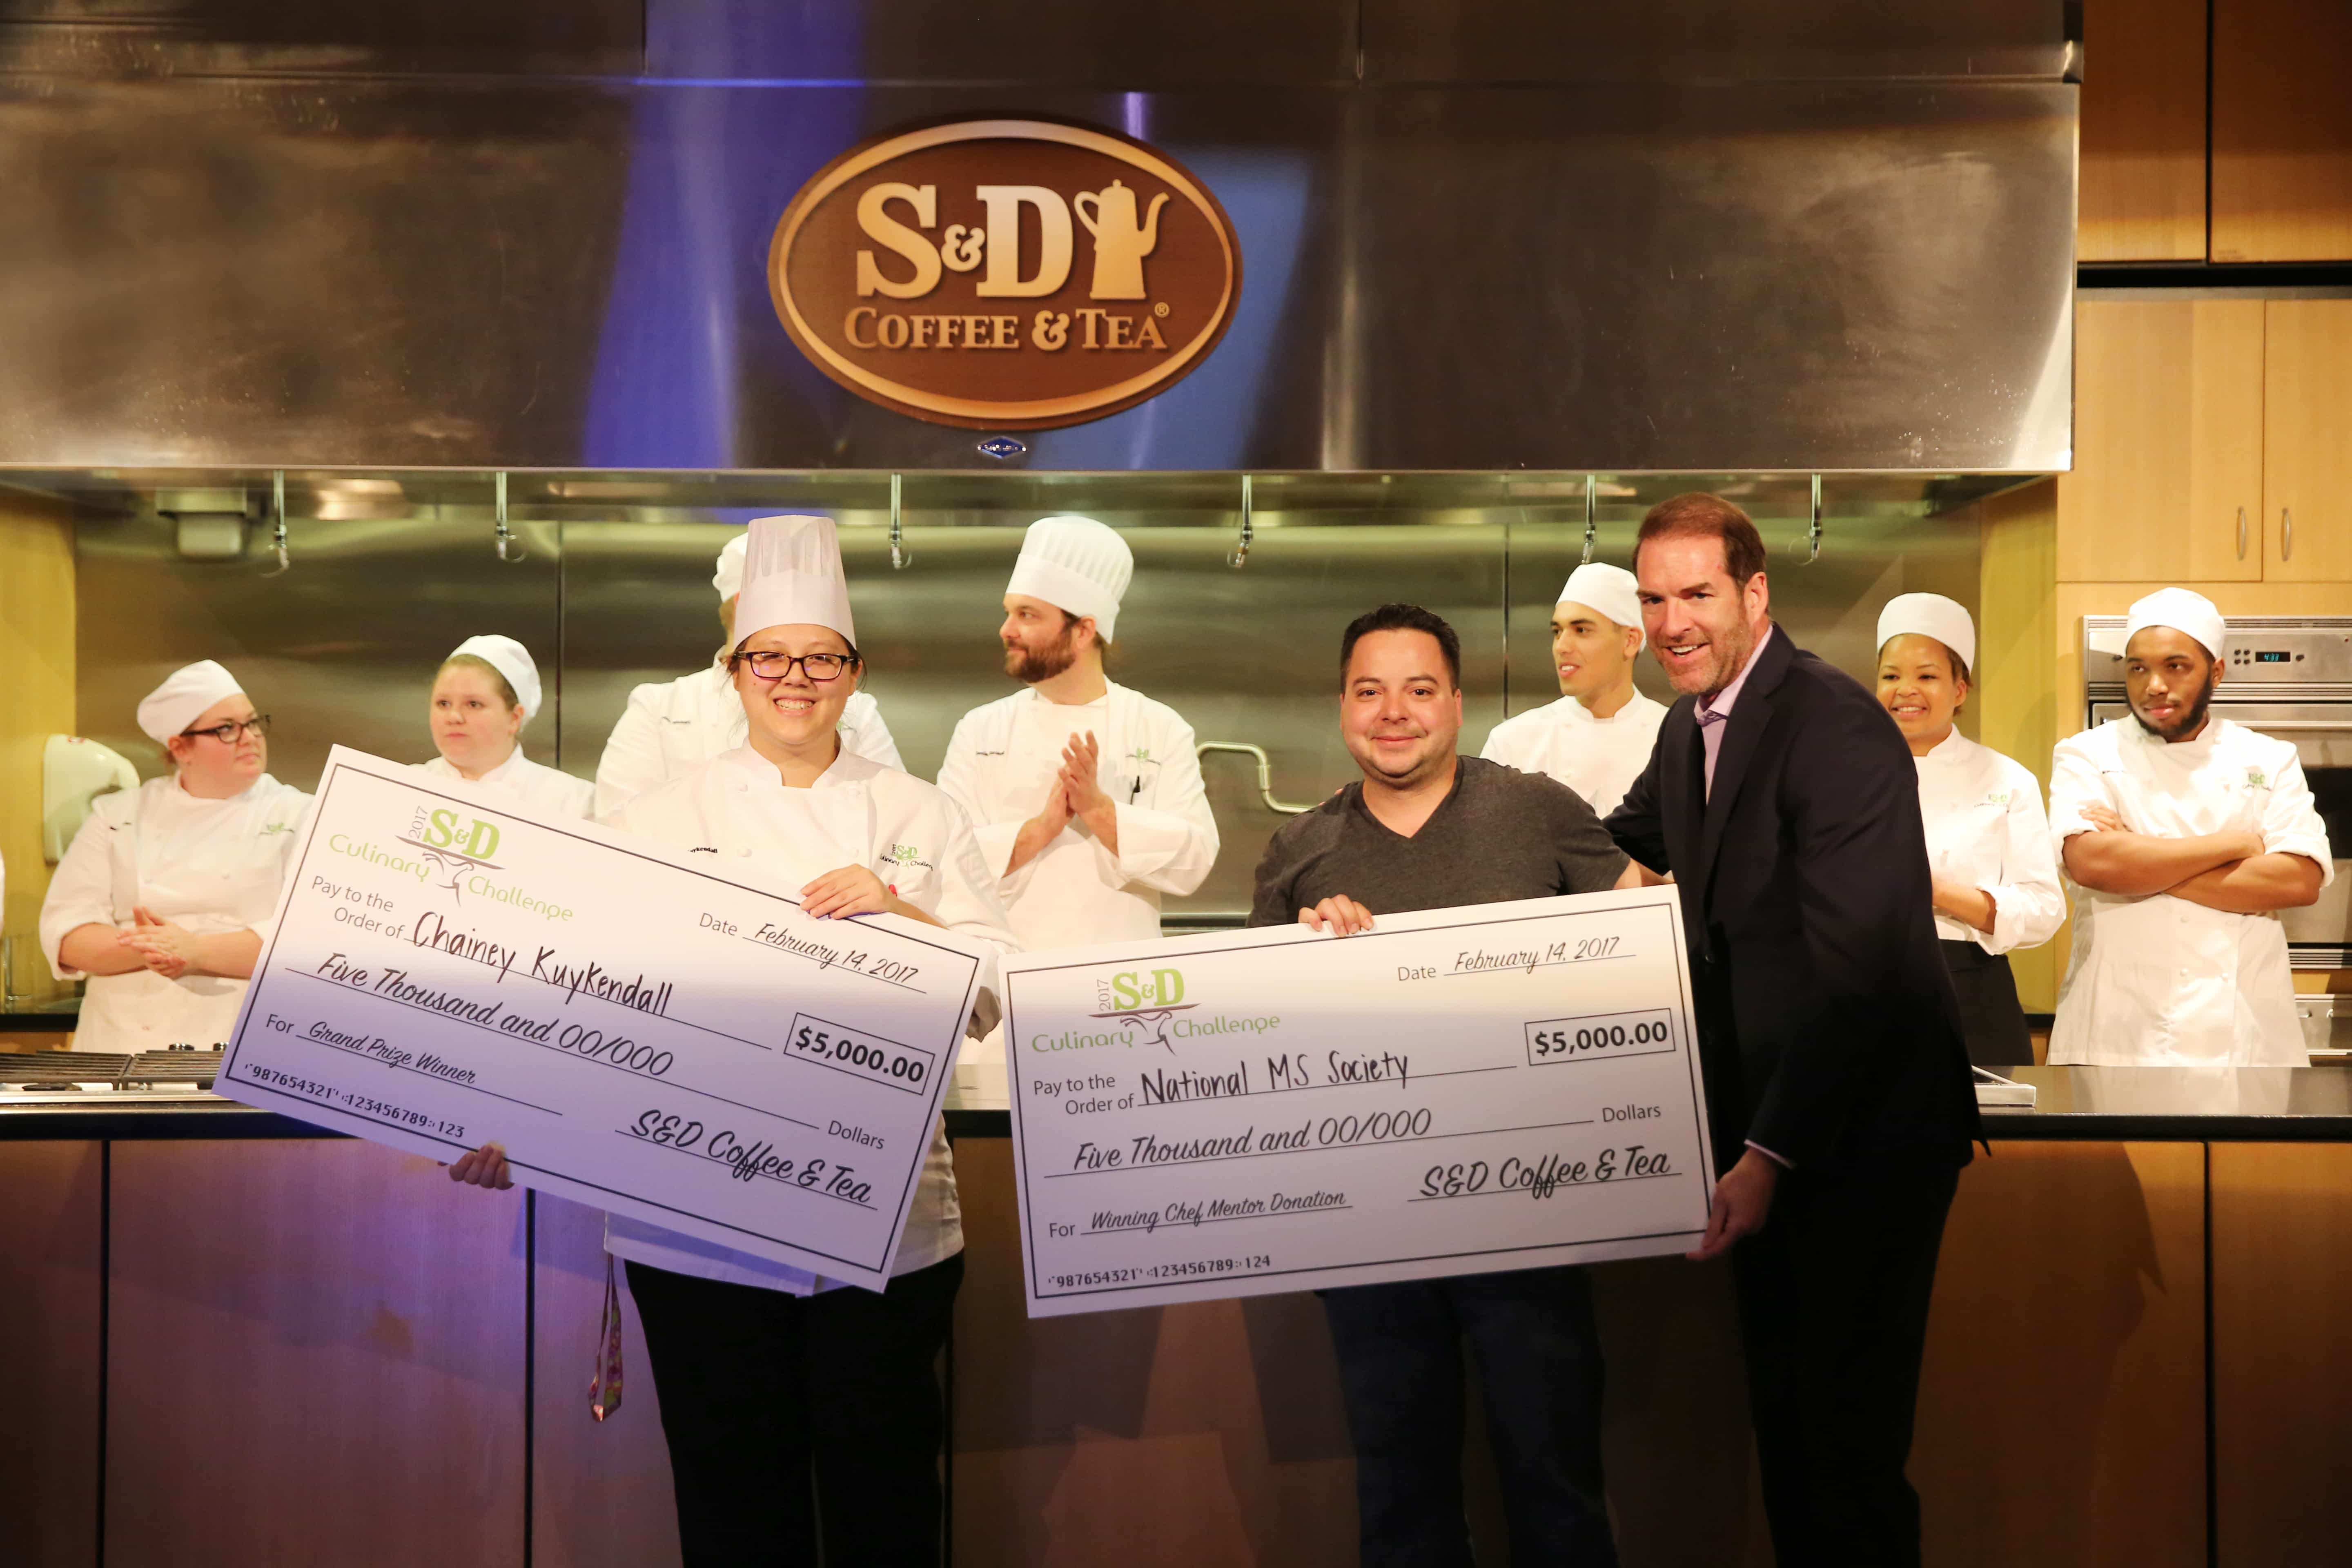 Andrea Simrell 2017 SD Culinary Challenge Winners - JWU Charlotte Student Chainey Kuykendall Wins Back-to-Back S&D Culinary Challenges